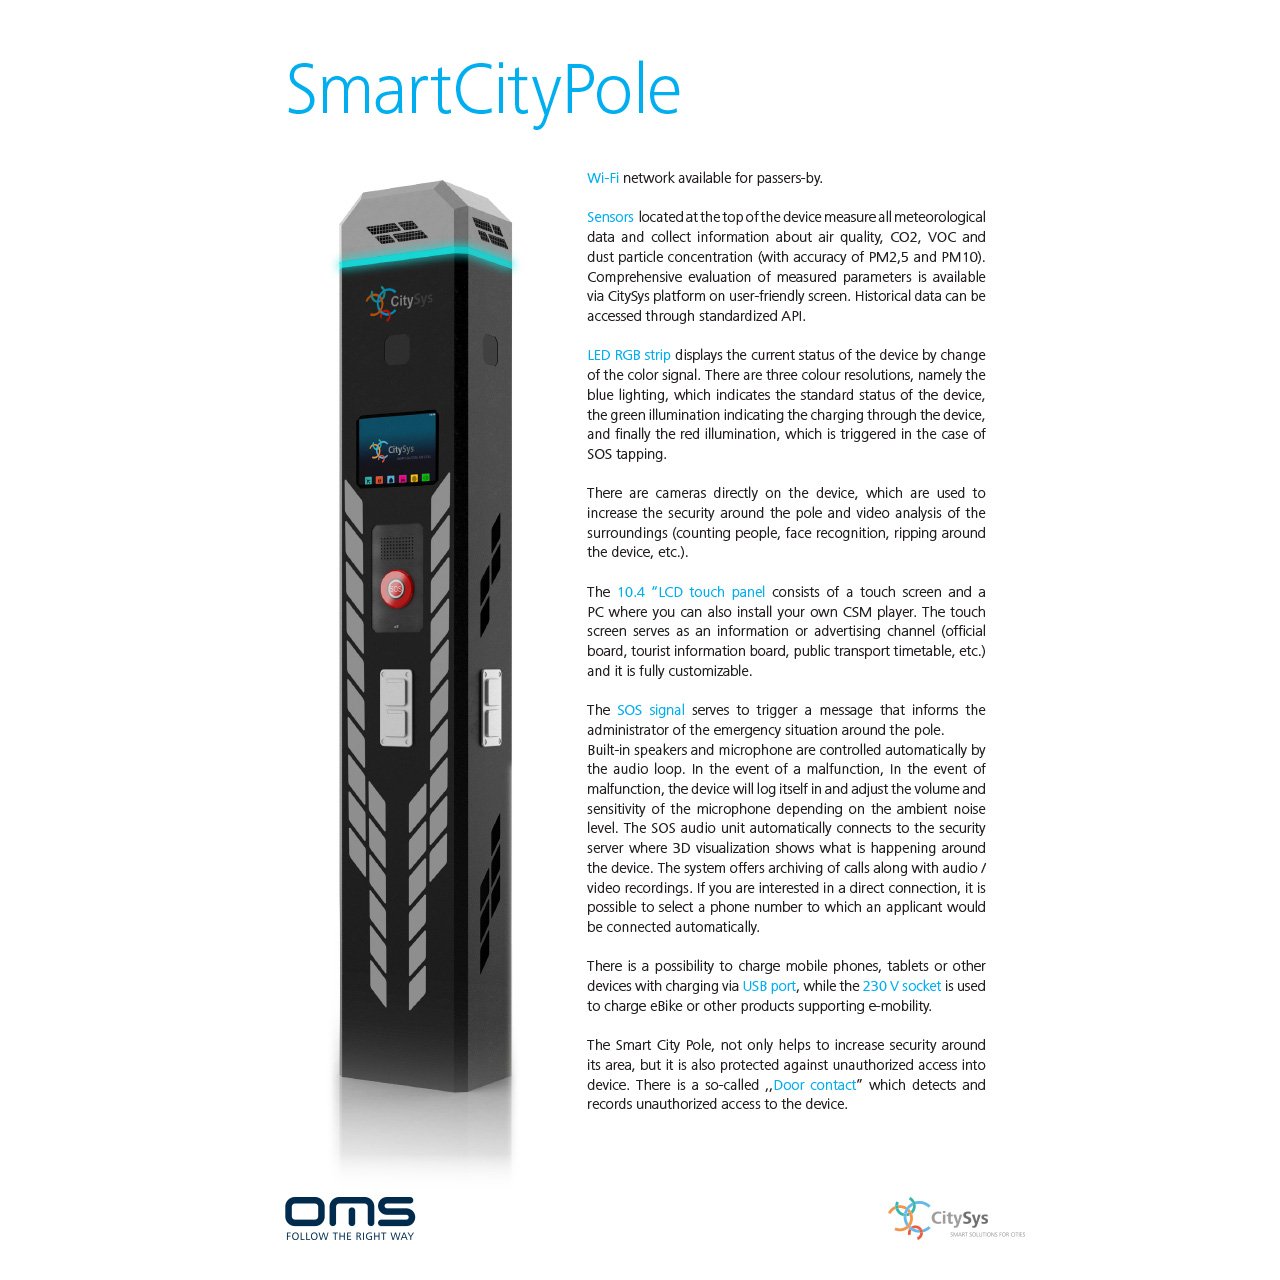 SmartCityPole | OMS IoT Systems